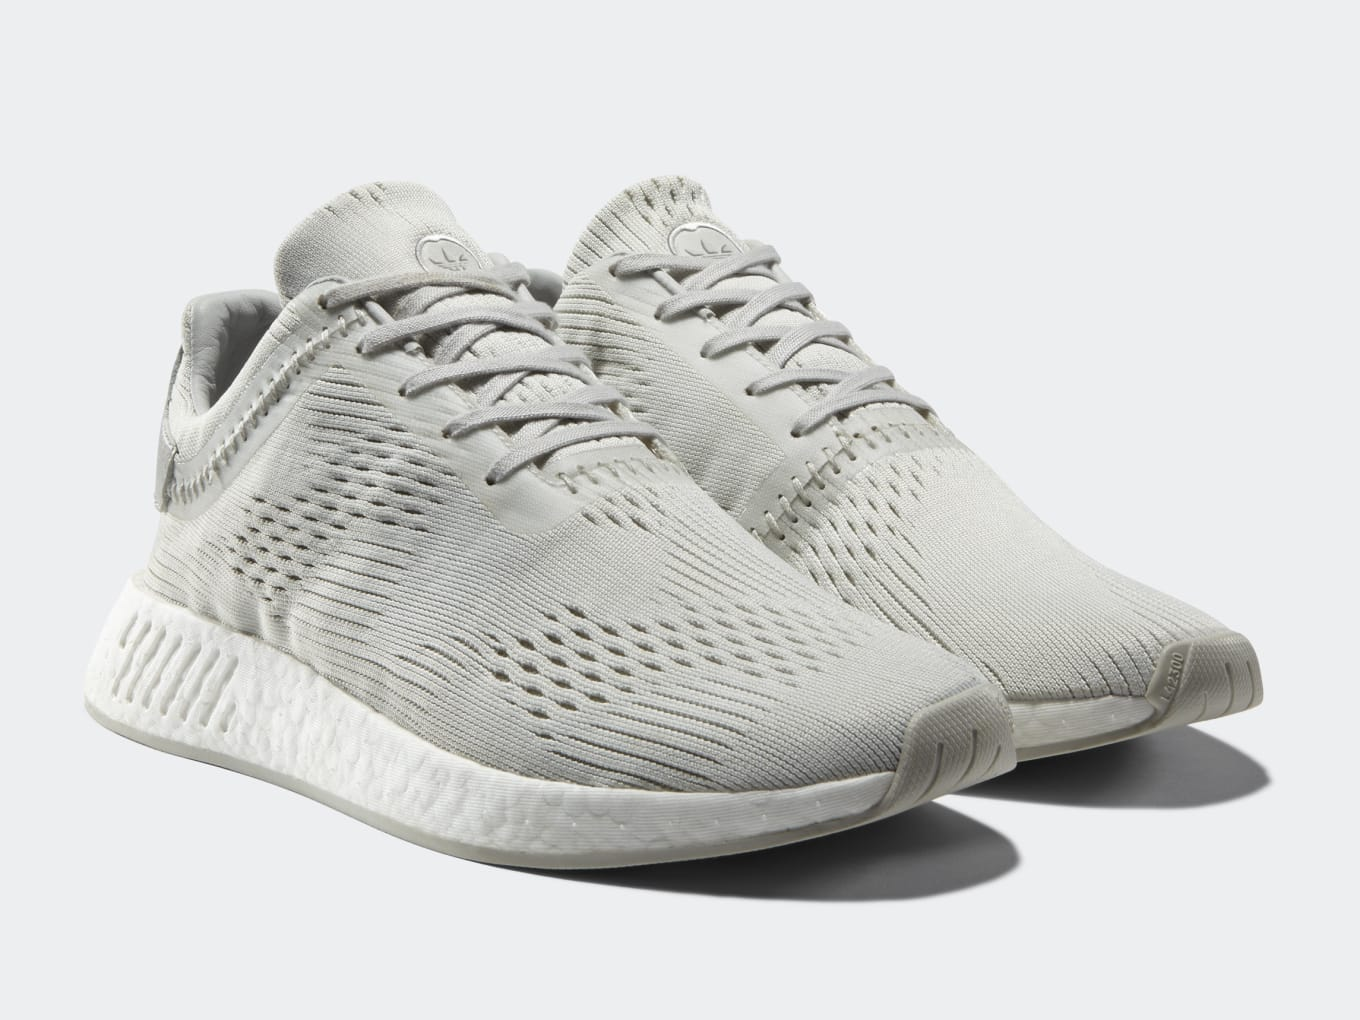 online store 76426 a4d20 Wings + Horns x Adidas Originals Collection | Sole Collector